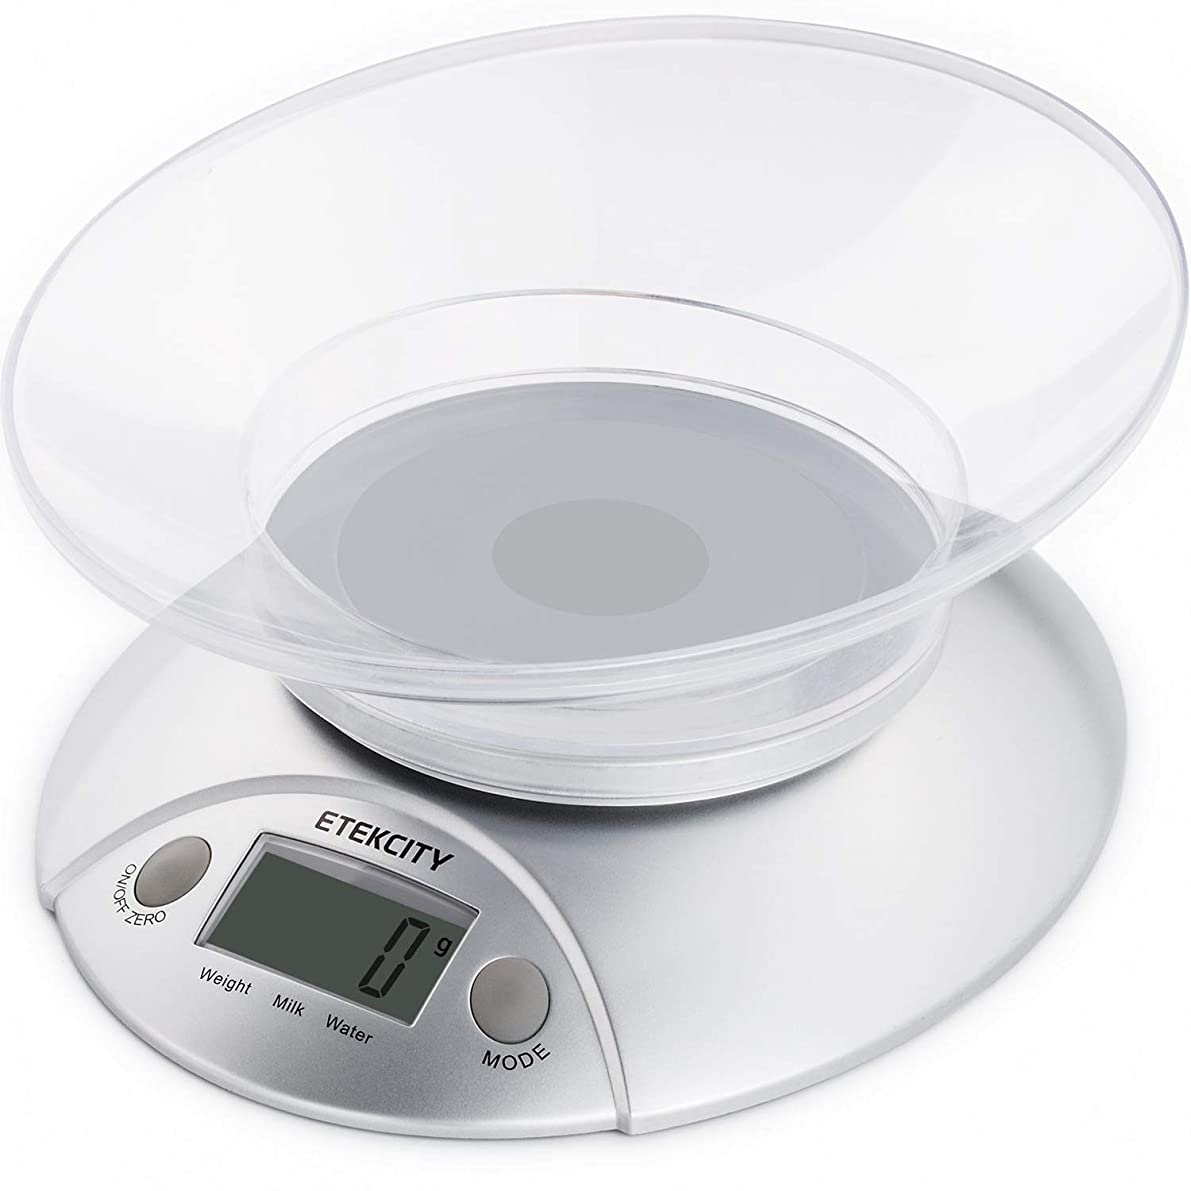 Etekcity Digital Kitchen Food Scale and Multifunction Weight Scale with Removable Bowl, 11 lb 5kg